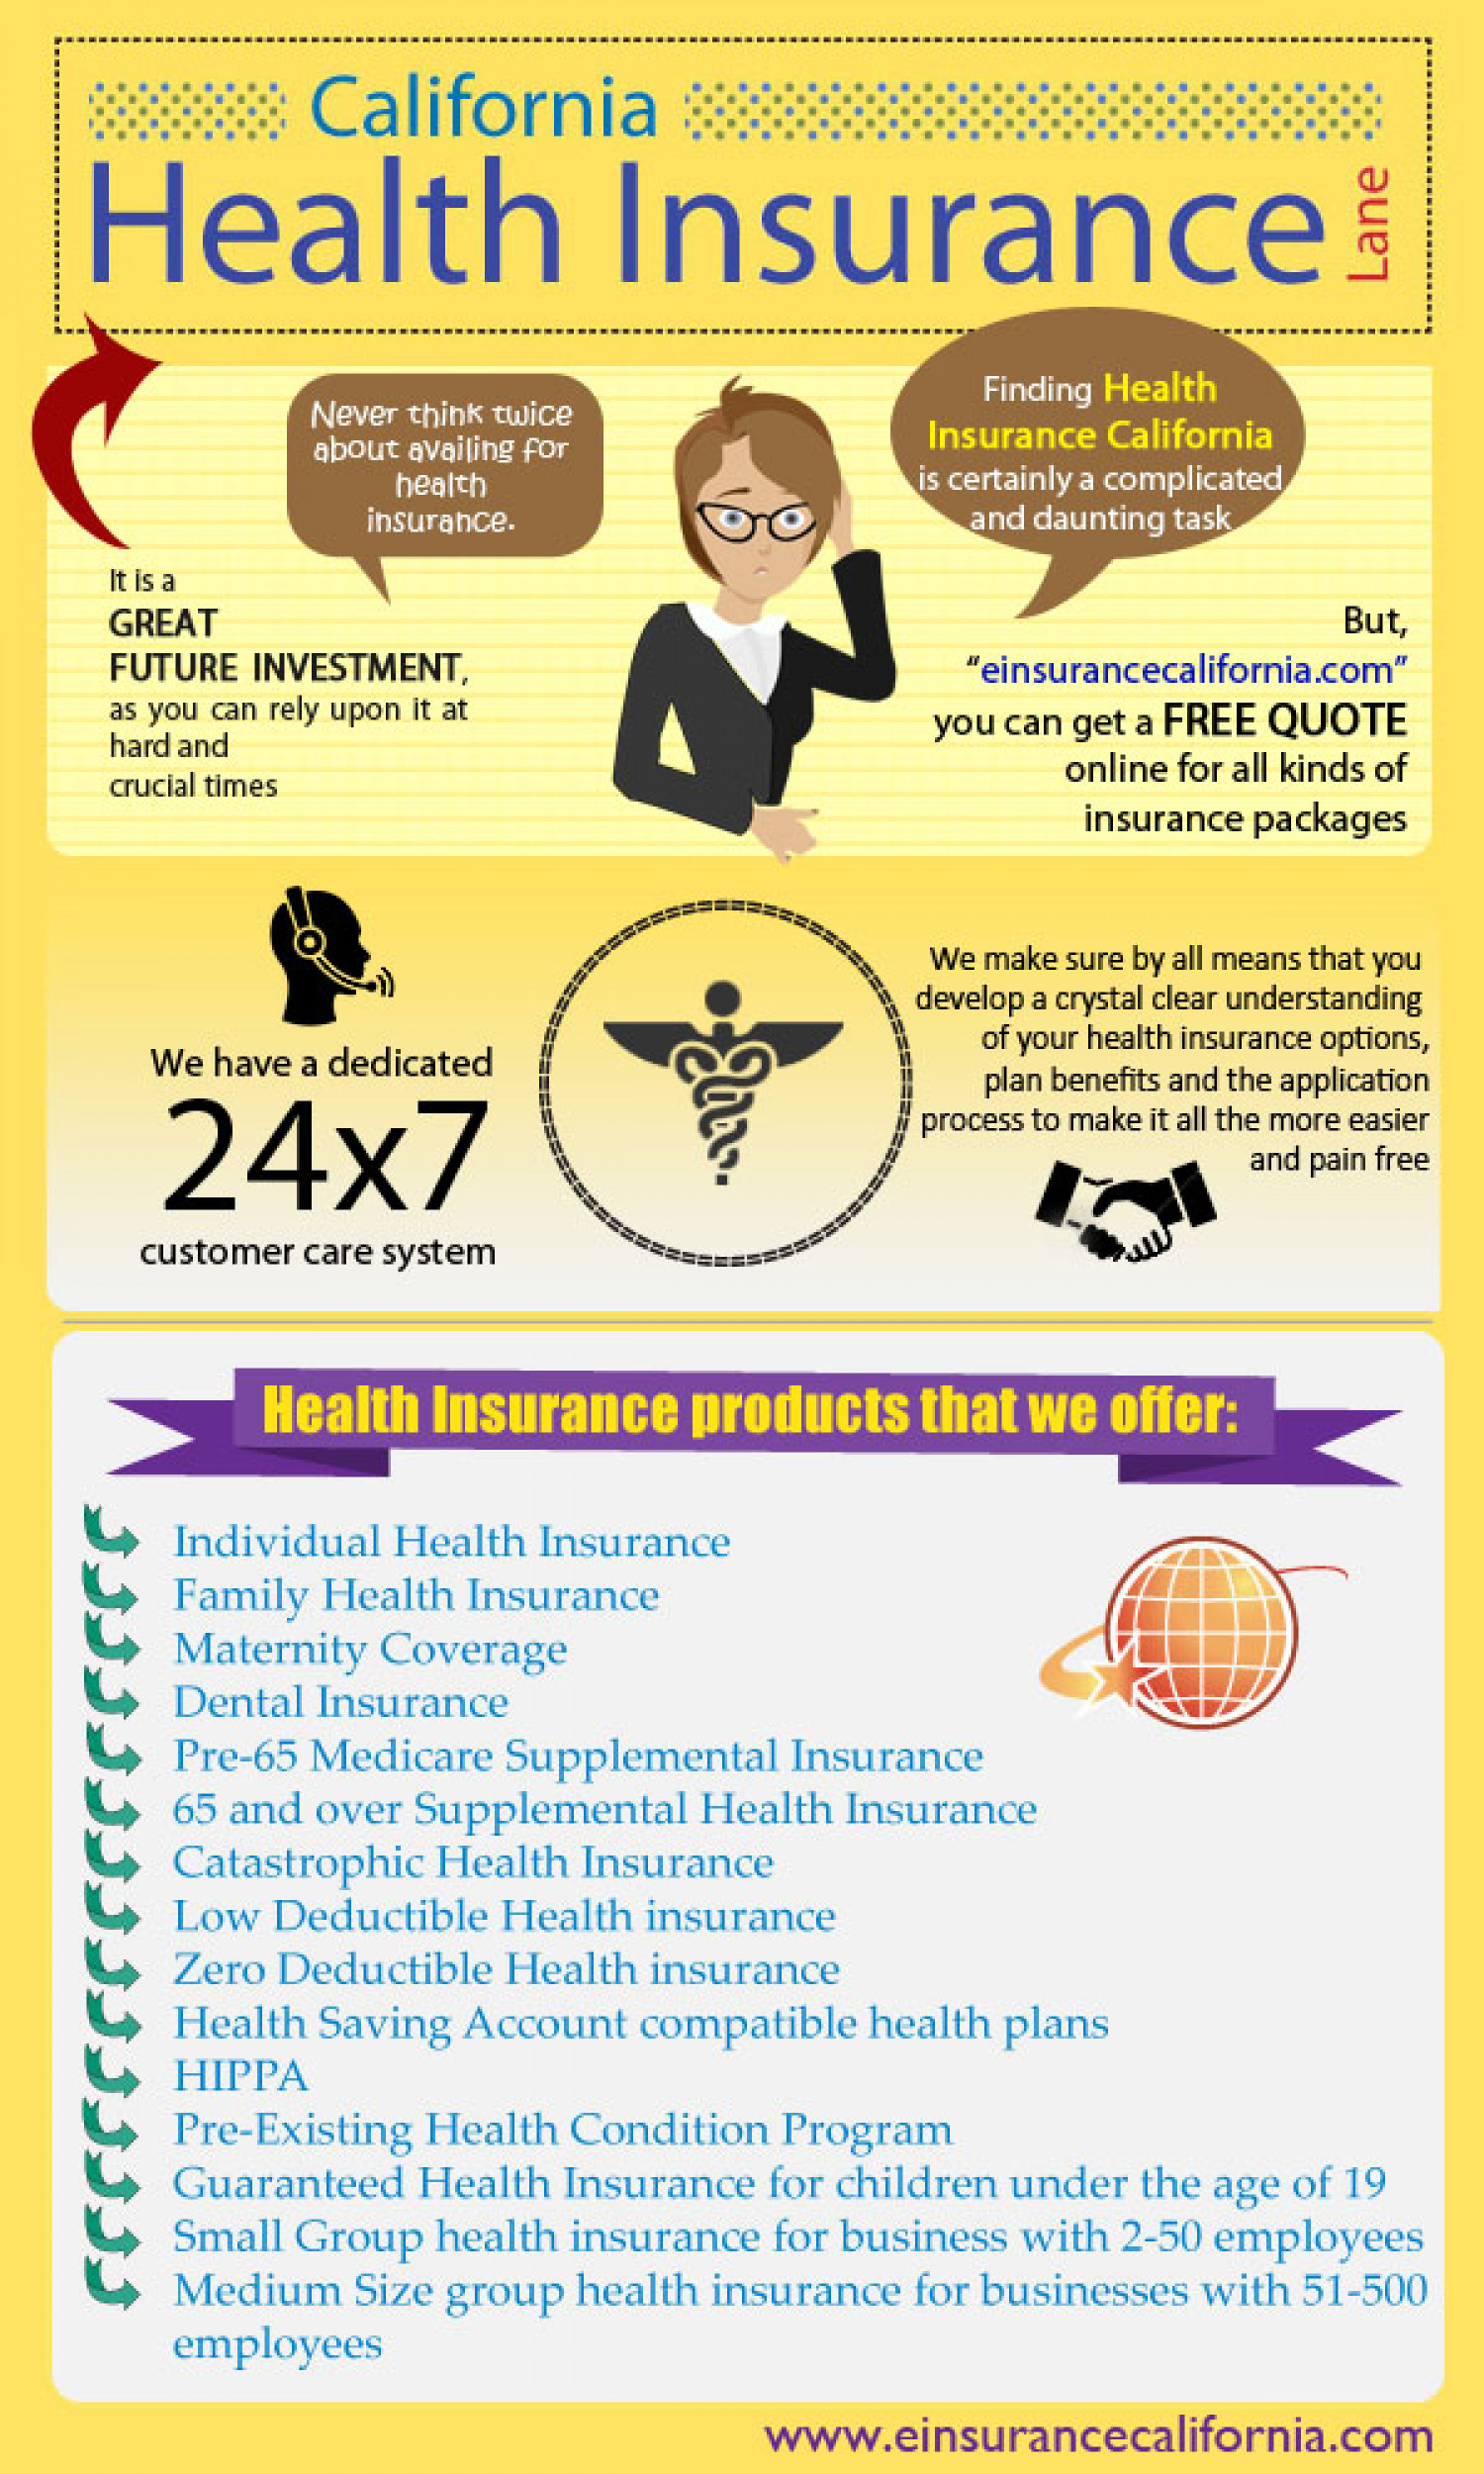 Health Insurance California Infographic